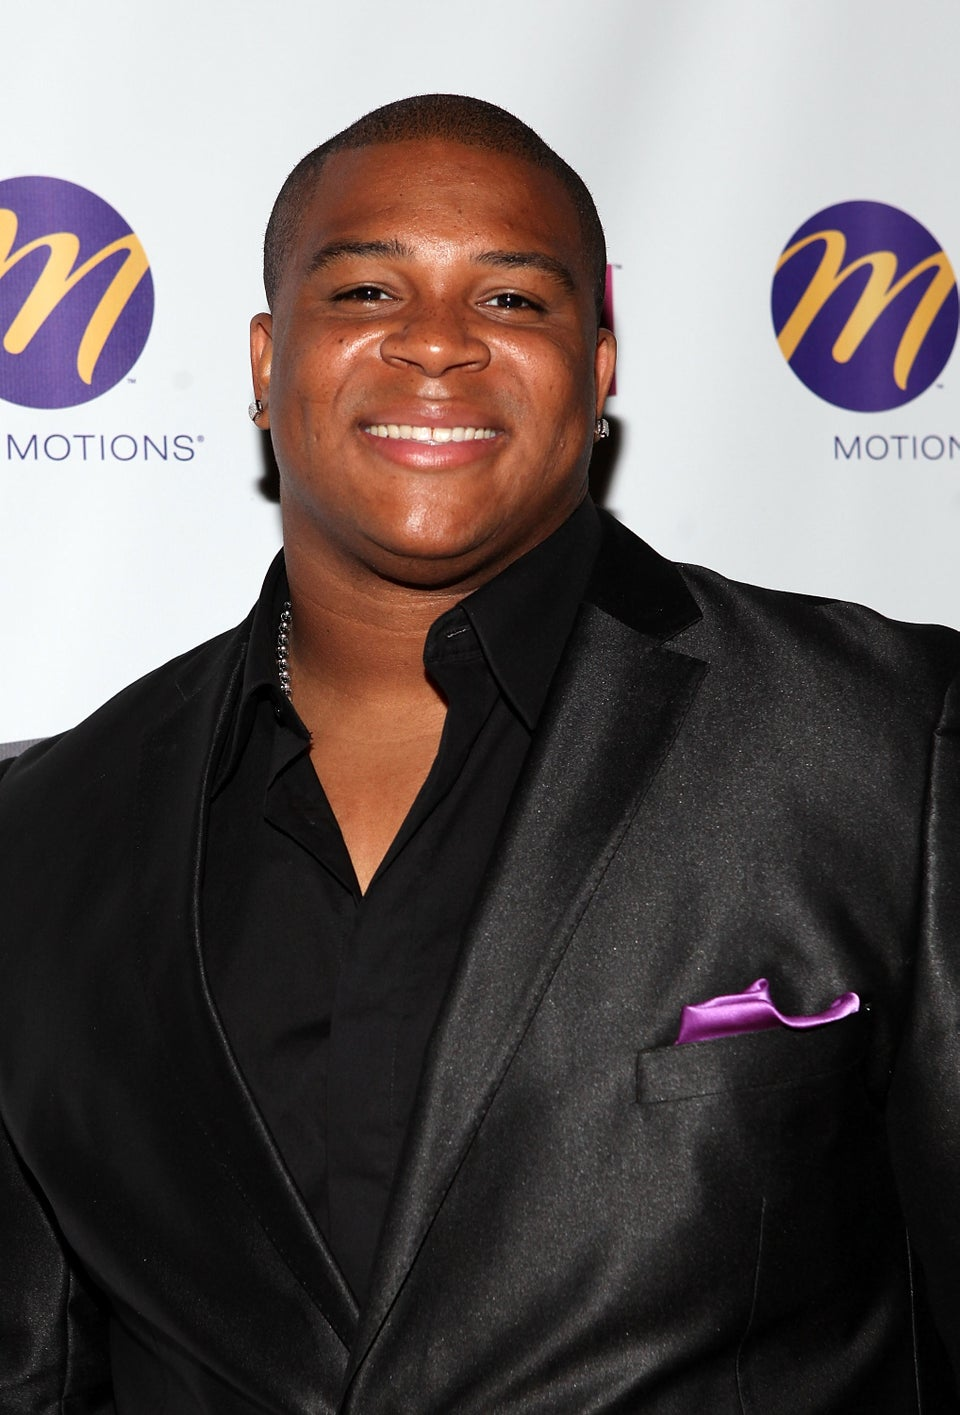 EXCLUSIVE: 'American Idol' Alum Big Mike Talks Fatherhood and 90-Pound Weight-Loss